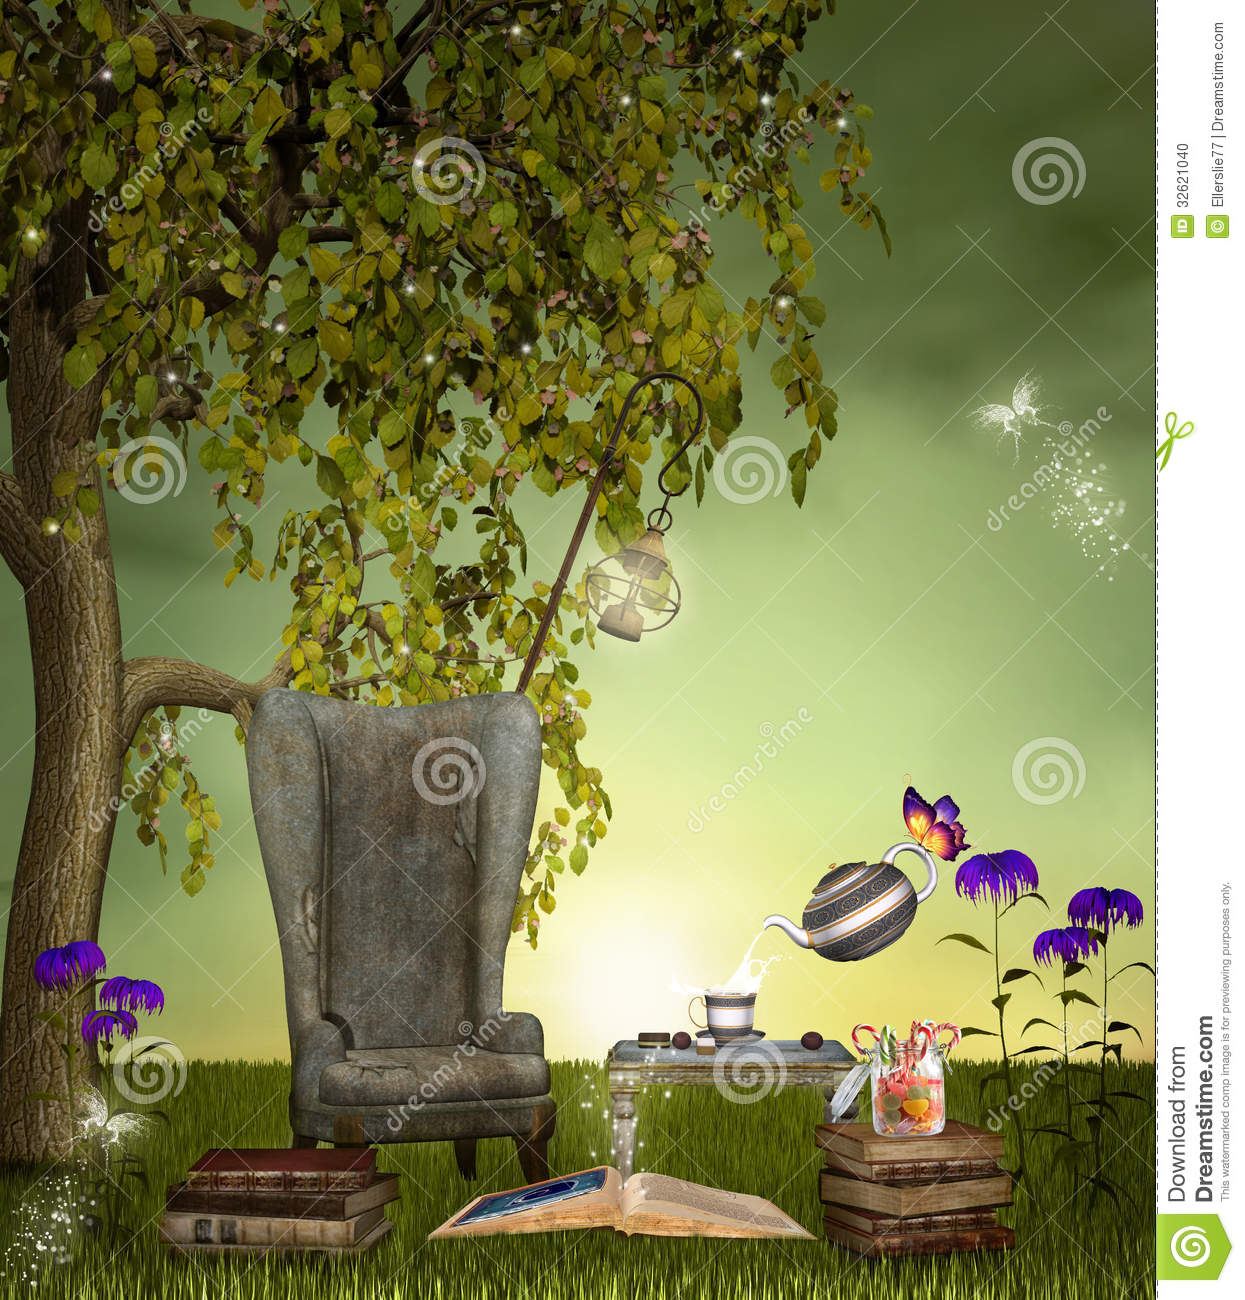 A Place For Reading Stock Photo Image 32621040